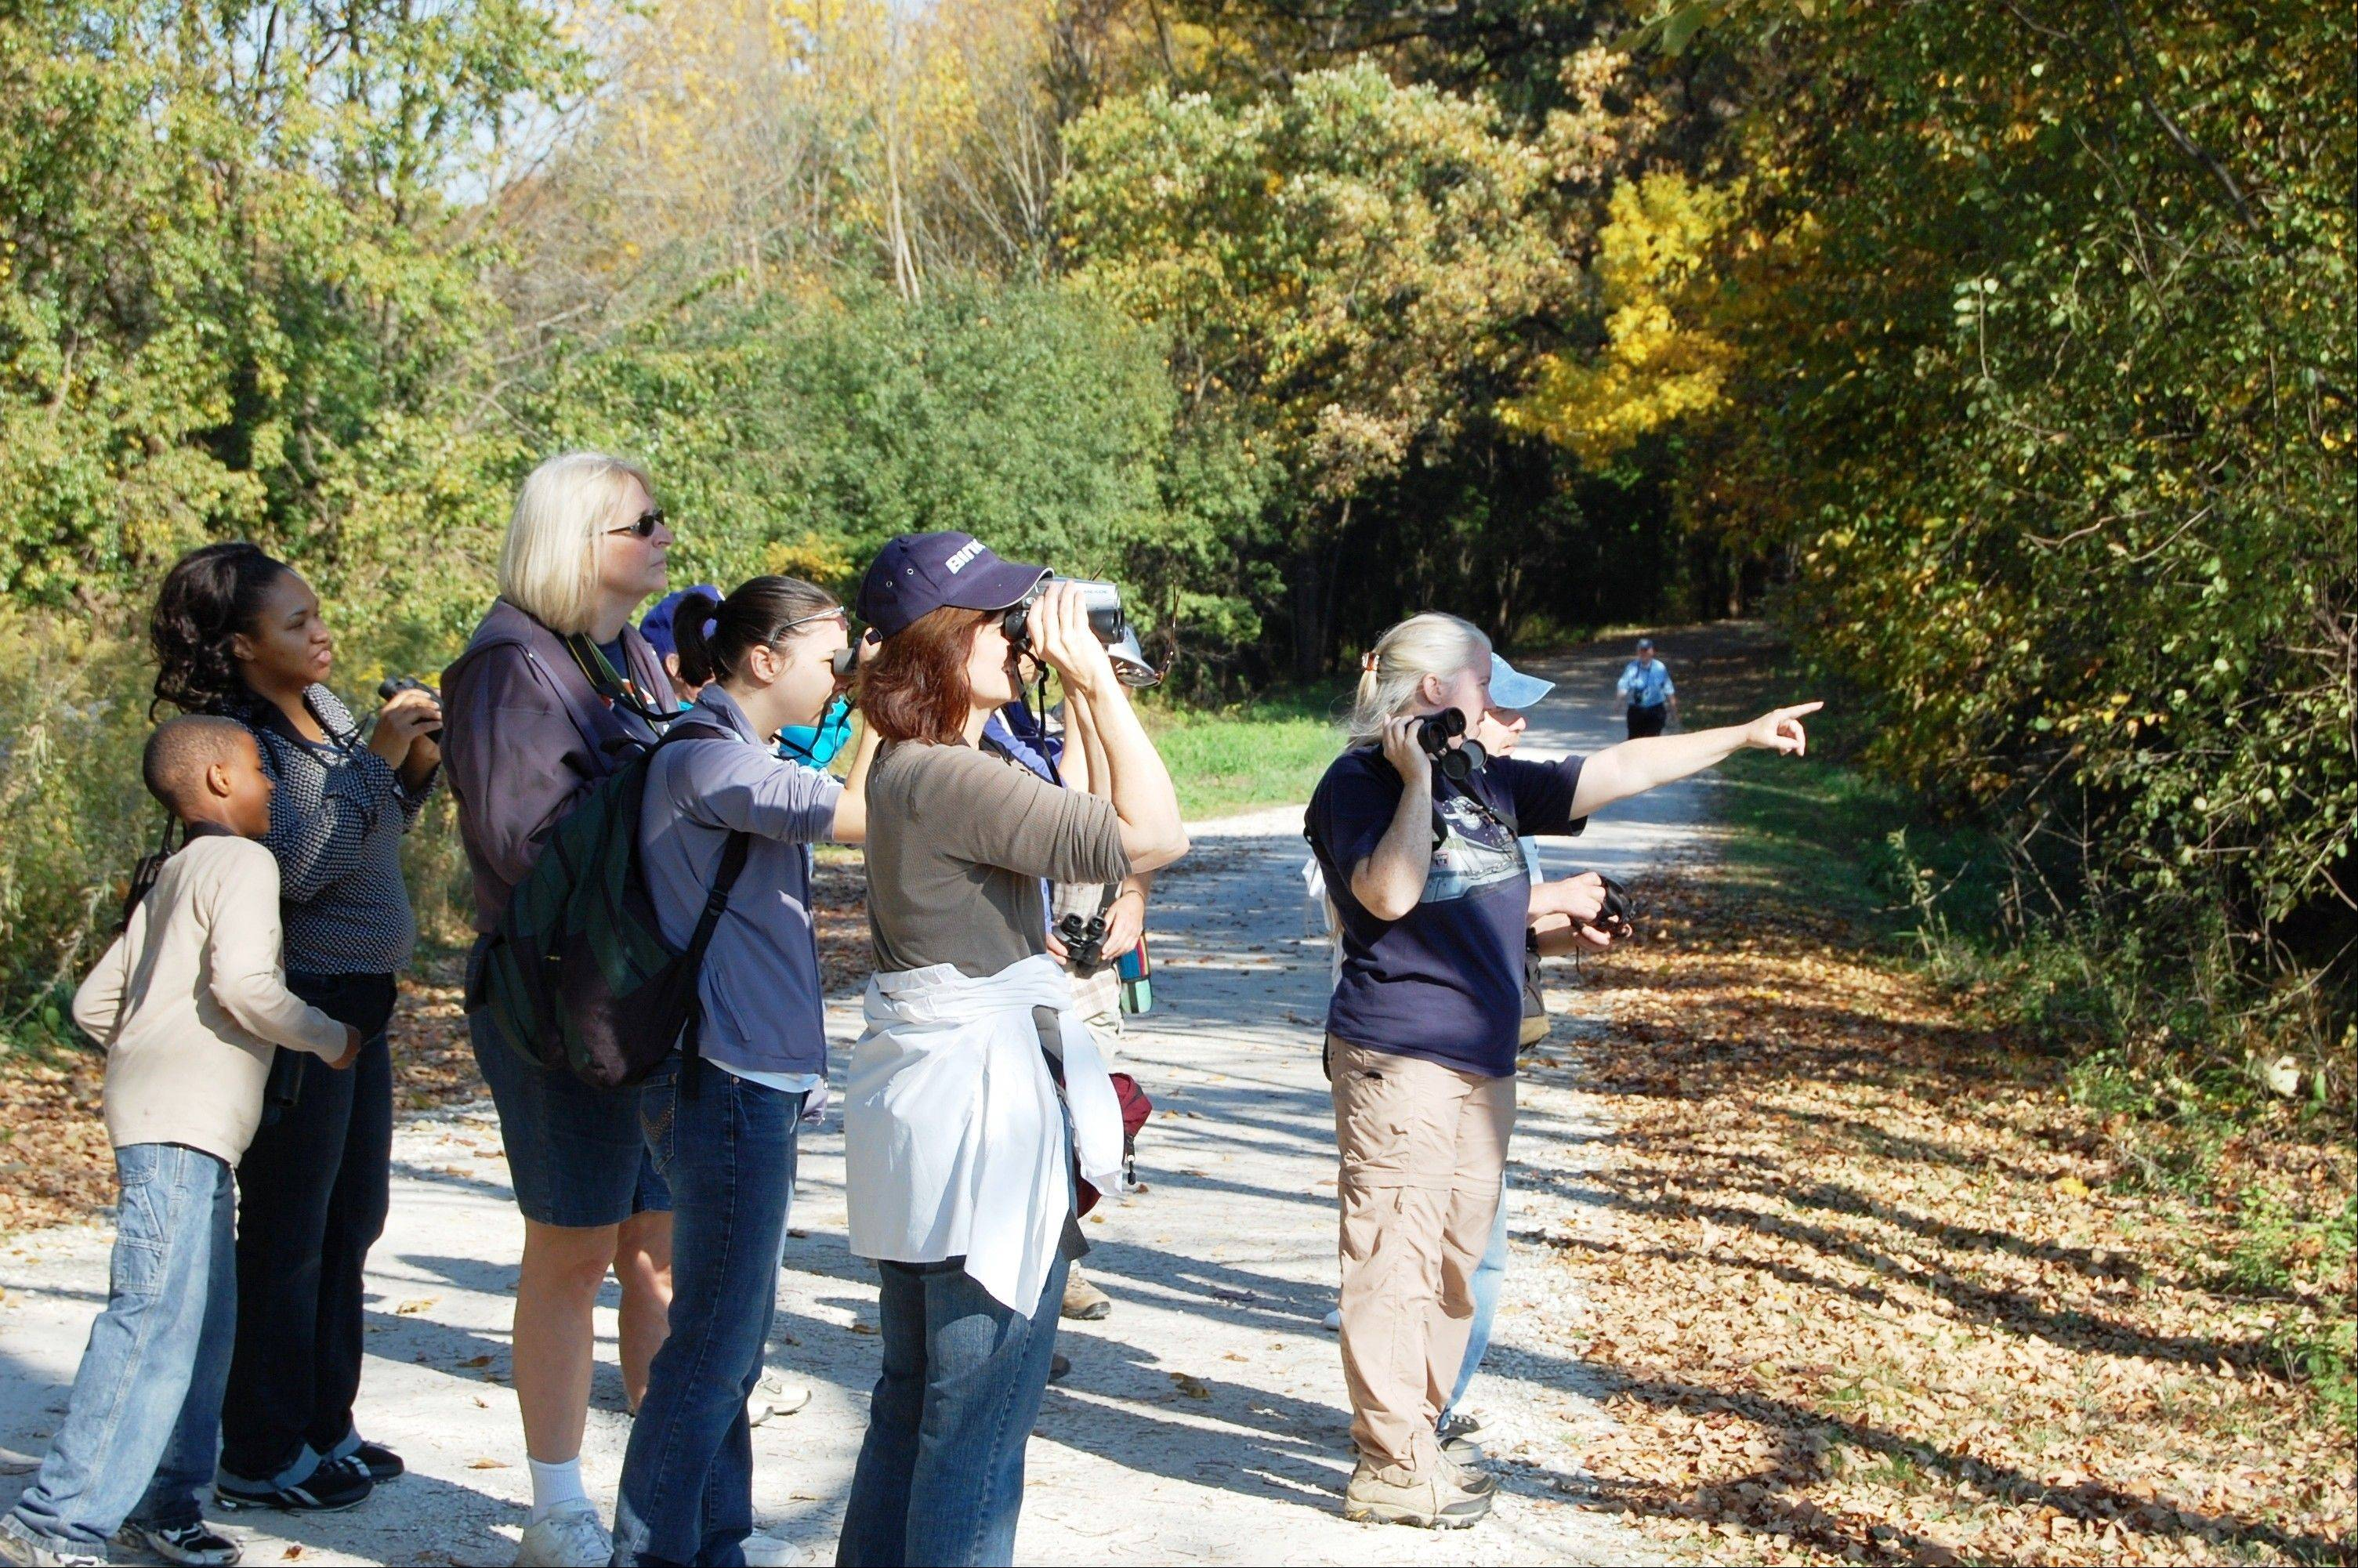 An early October walk at St. James Farm produced 42 species. Notable sightings included pied-billed grebe, wood duck, broad-winged hawk, brown creeper, five kinds of woodpeckers and numerous yellow-rumped warblers.